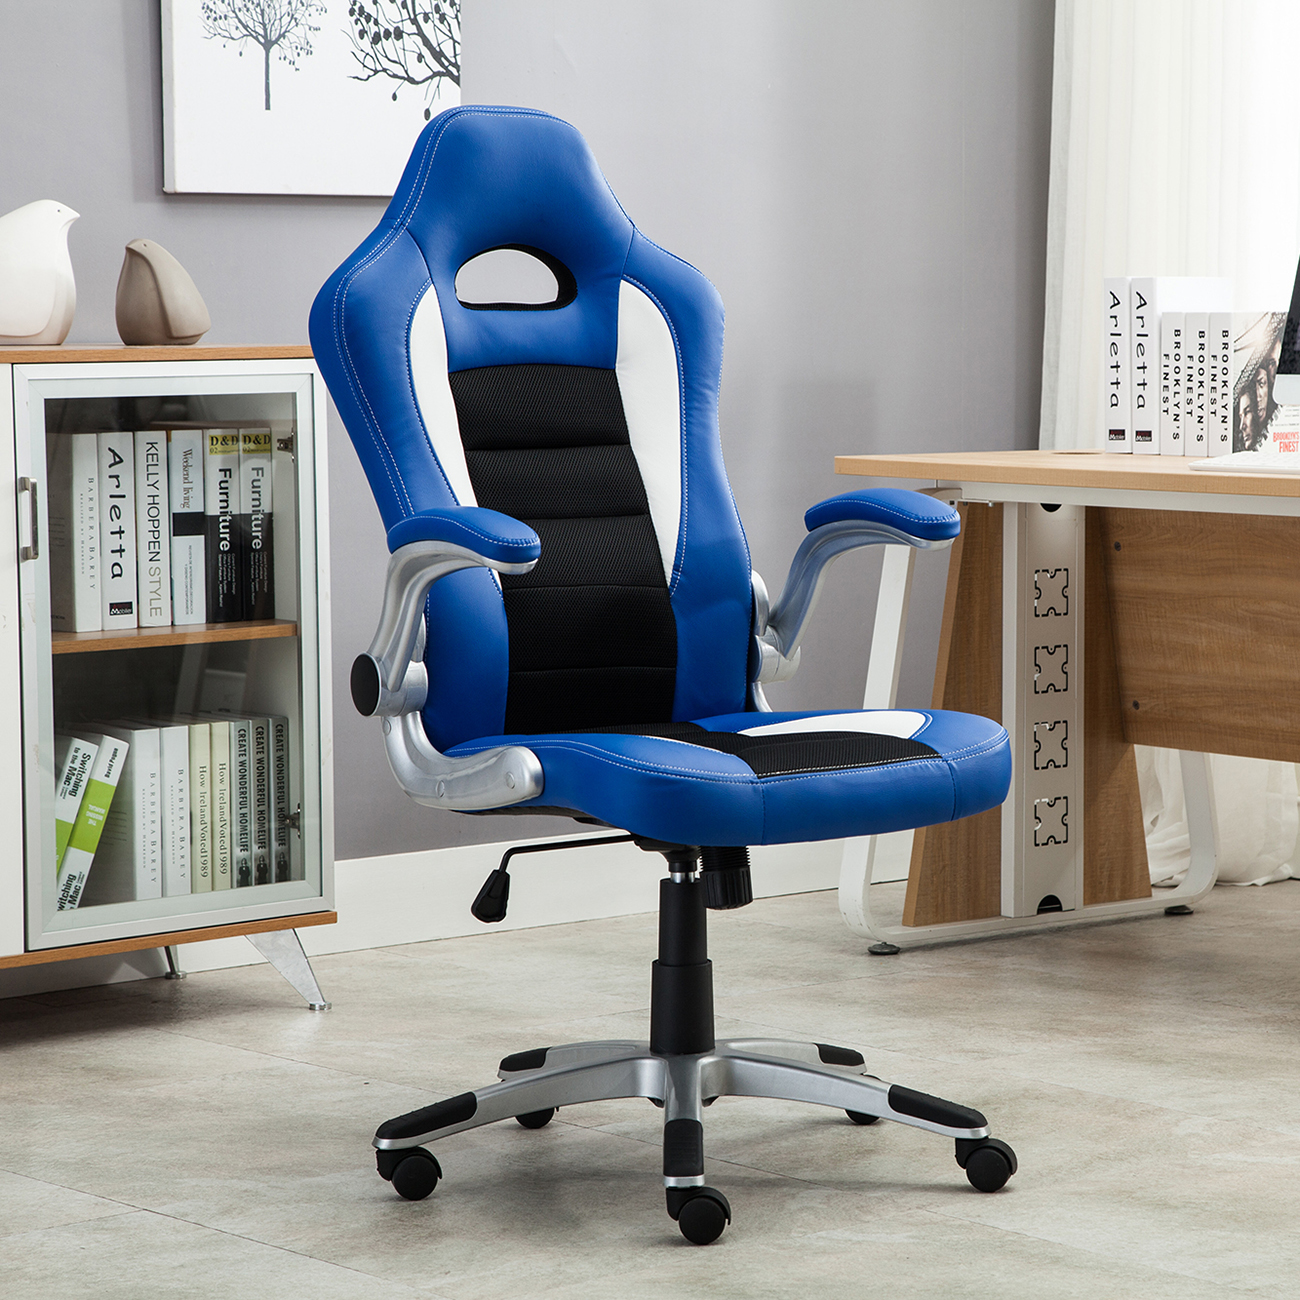 Office-Racing-Chair-Bucket-Seat-High-Back-Ergonomic- & Office Racing Chair Bucket Seat High Back Ergonomic Gaming Computer ...